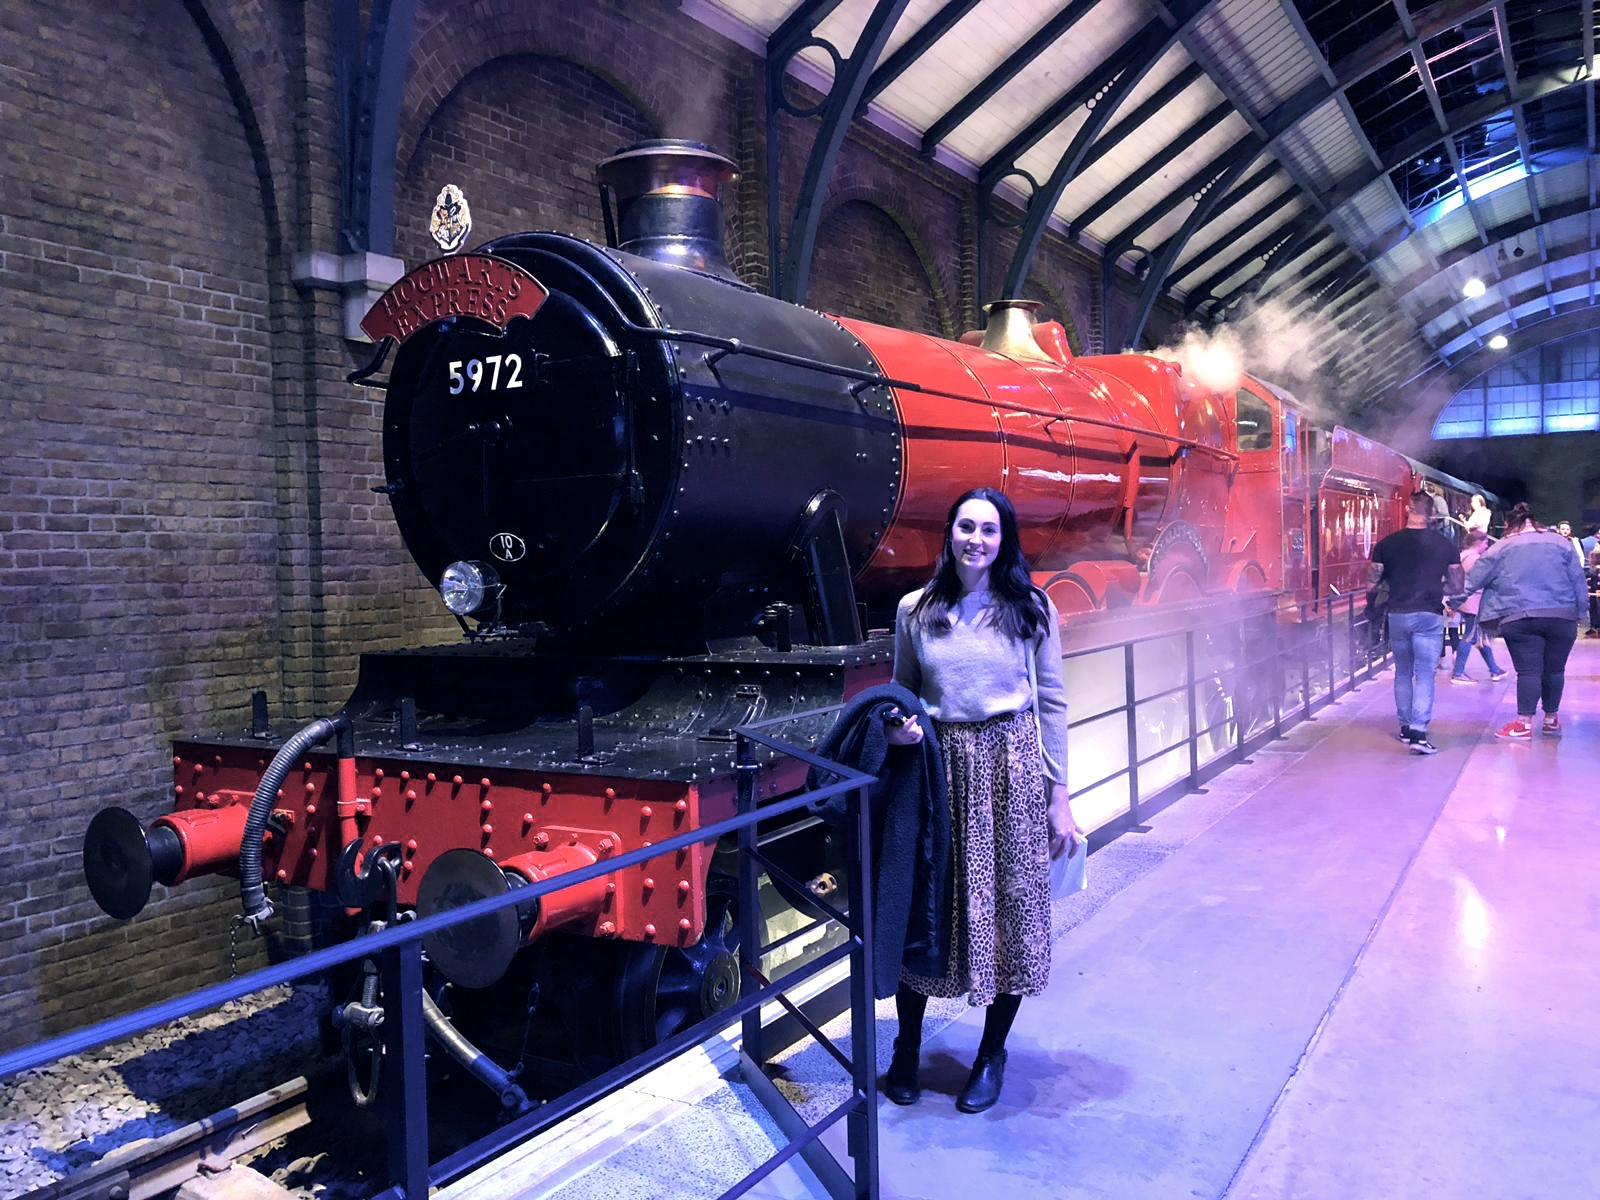 Standing in front of the Hogwarts Express, wearing a midi skirt and jumper